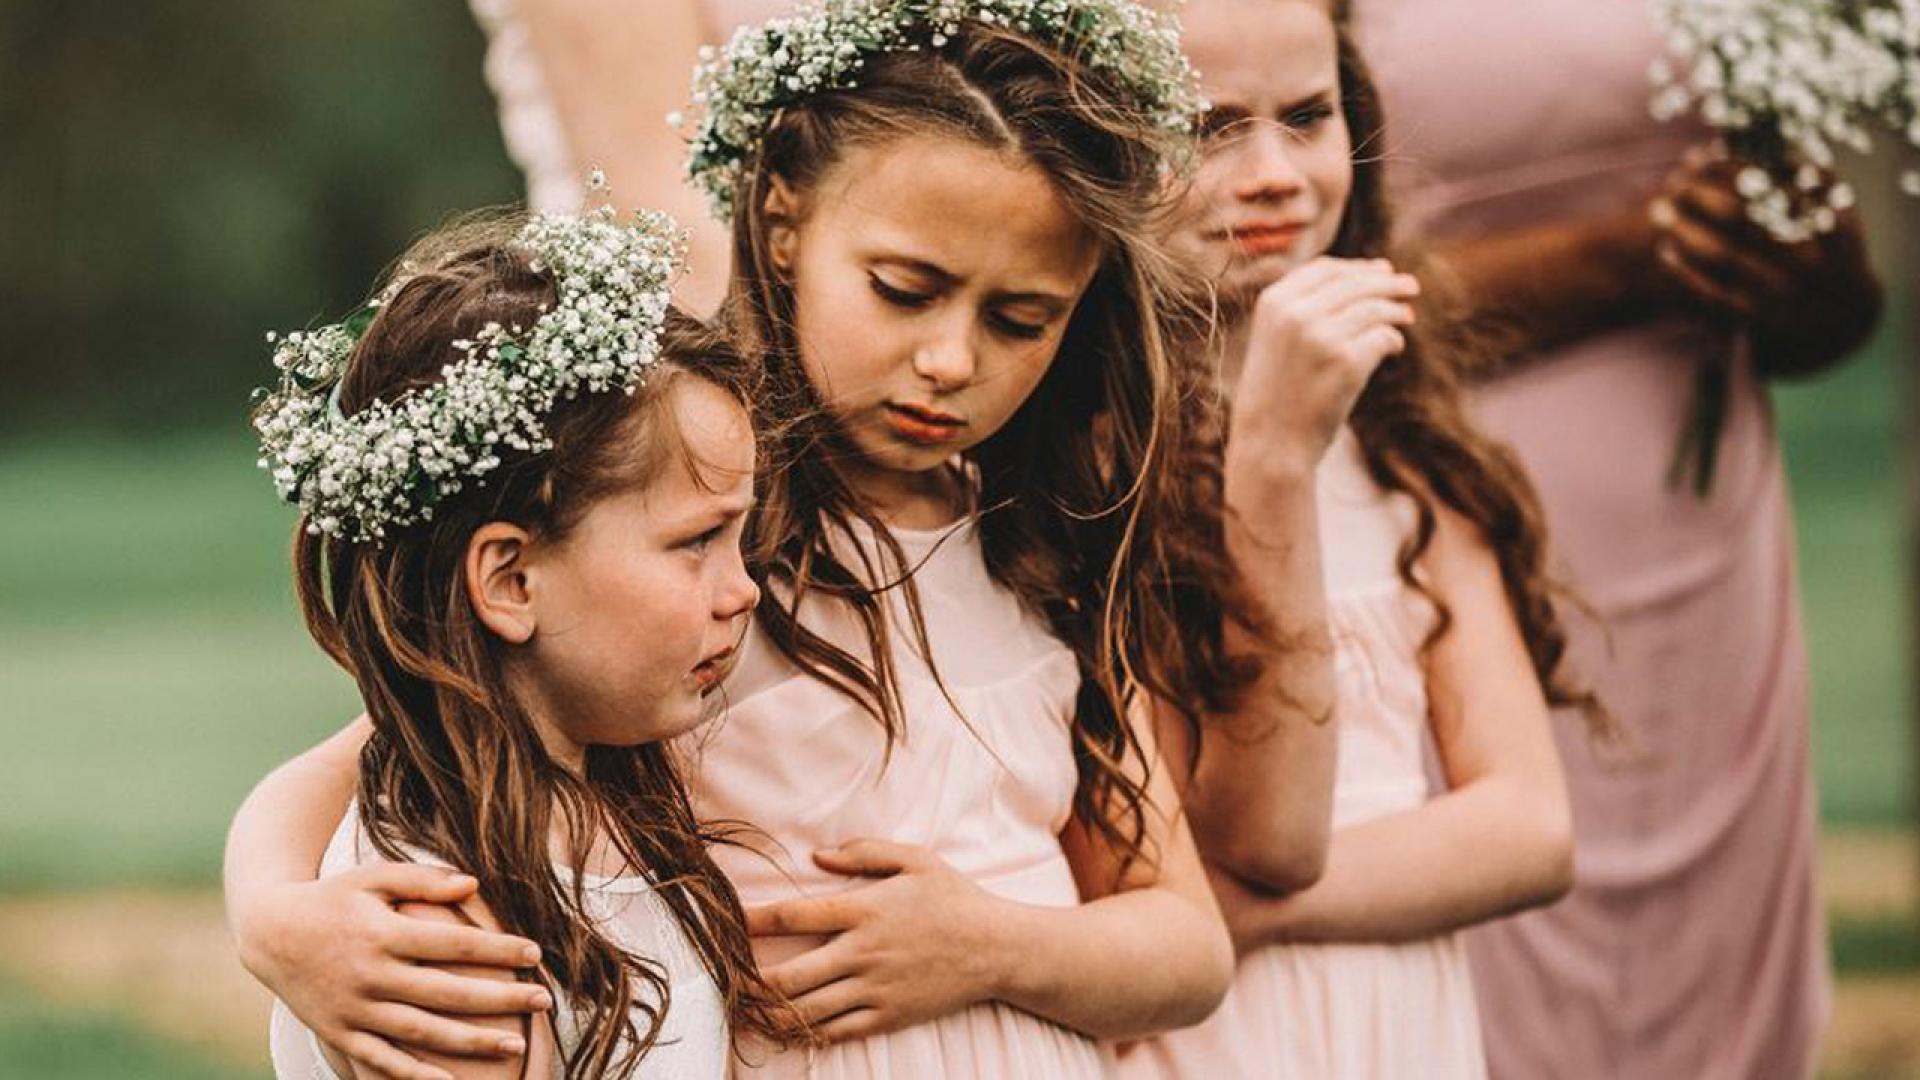 Lexi Gibson was overcome with emotion at her parents' wedding.